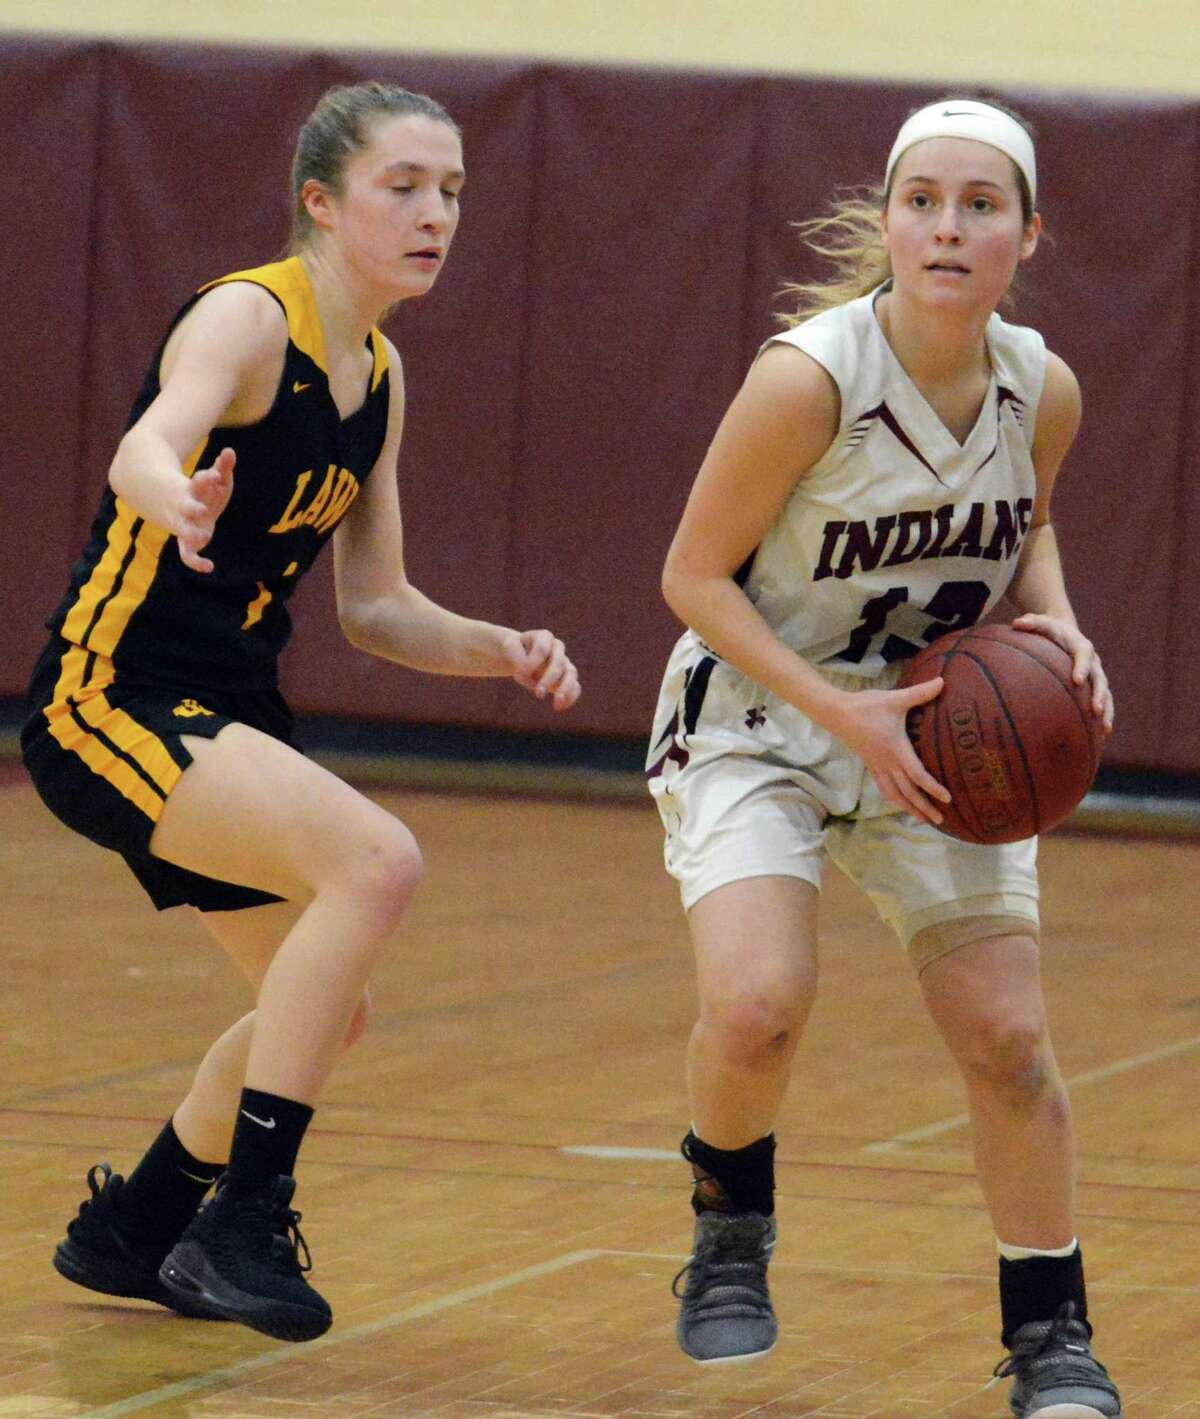 North Haven's Laura Petrefesa looks to pass during the first round of the SCC tournament against Law on Thursday.